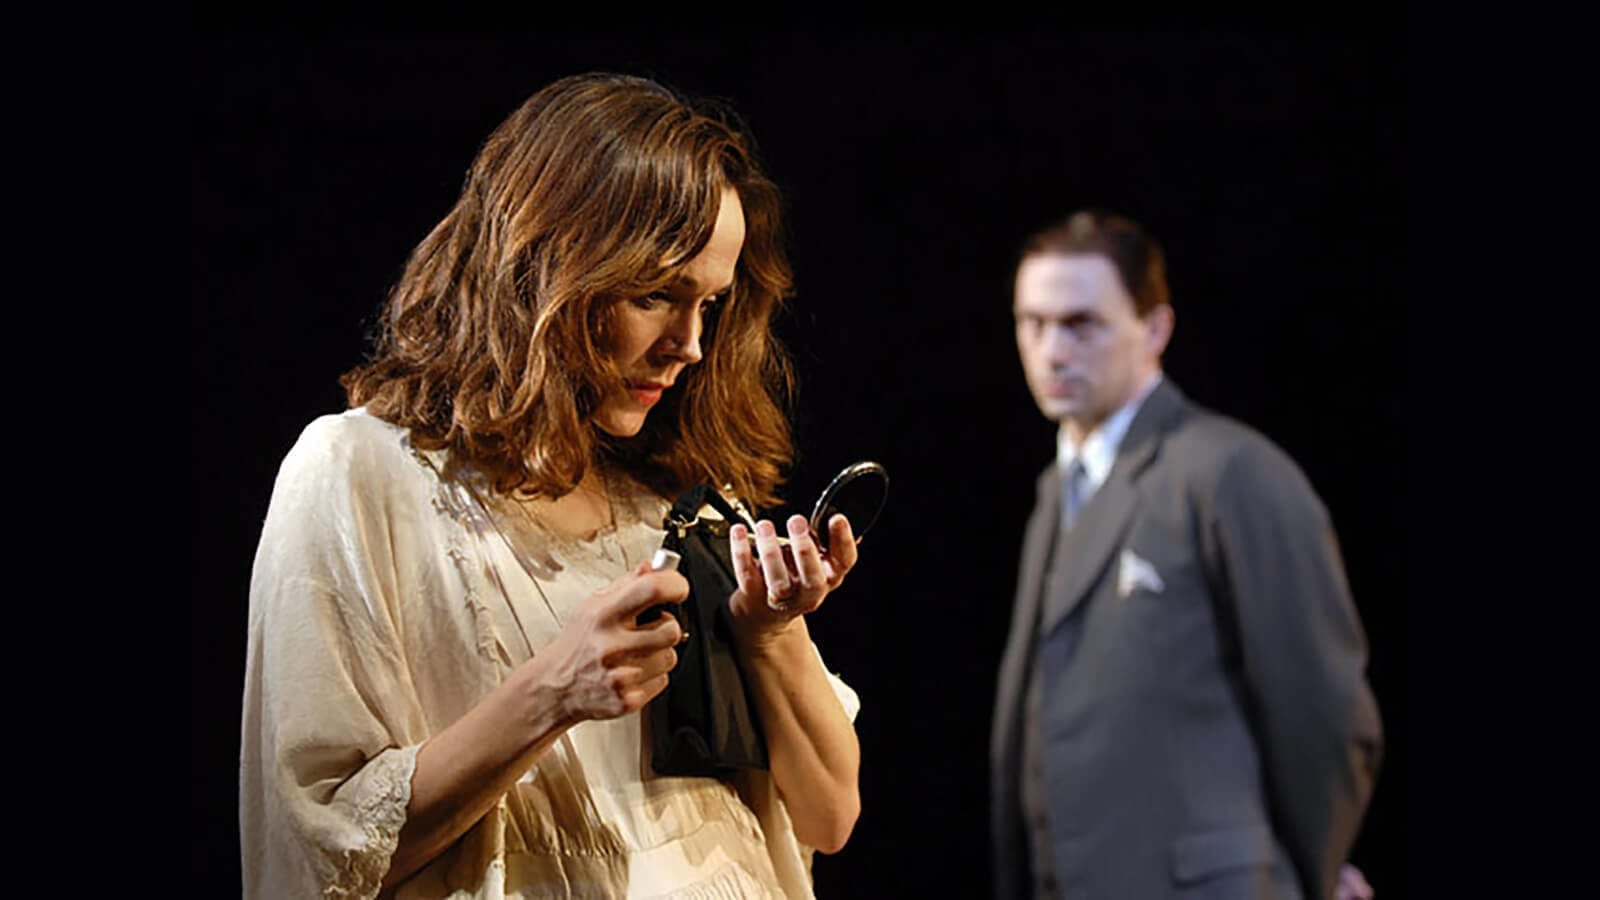 Frances O'Connor and Will Keen in Tom And Viv. Production photo by Hugu Glendinning